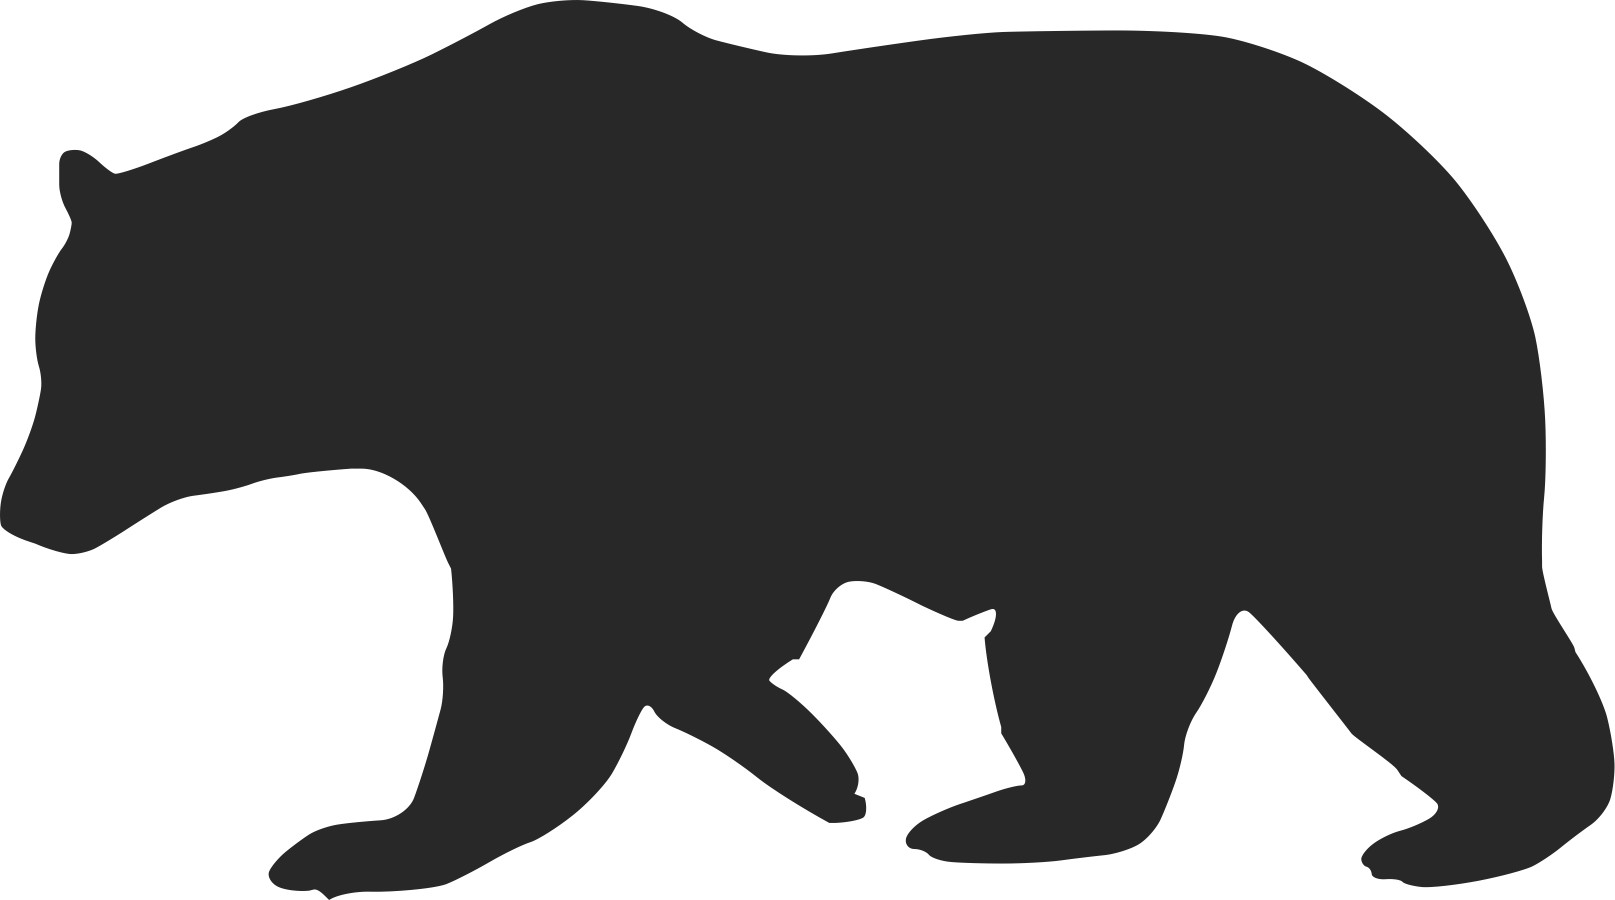 grizzly bear outline grizzly this grizzly has rather a dark outline it was outline bear grizzly